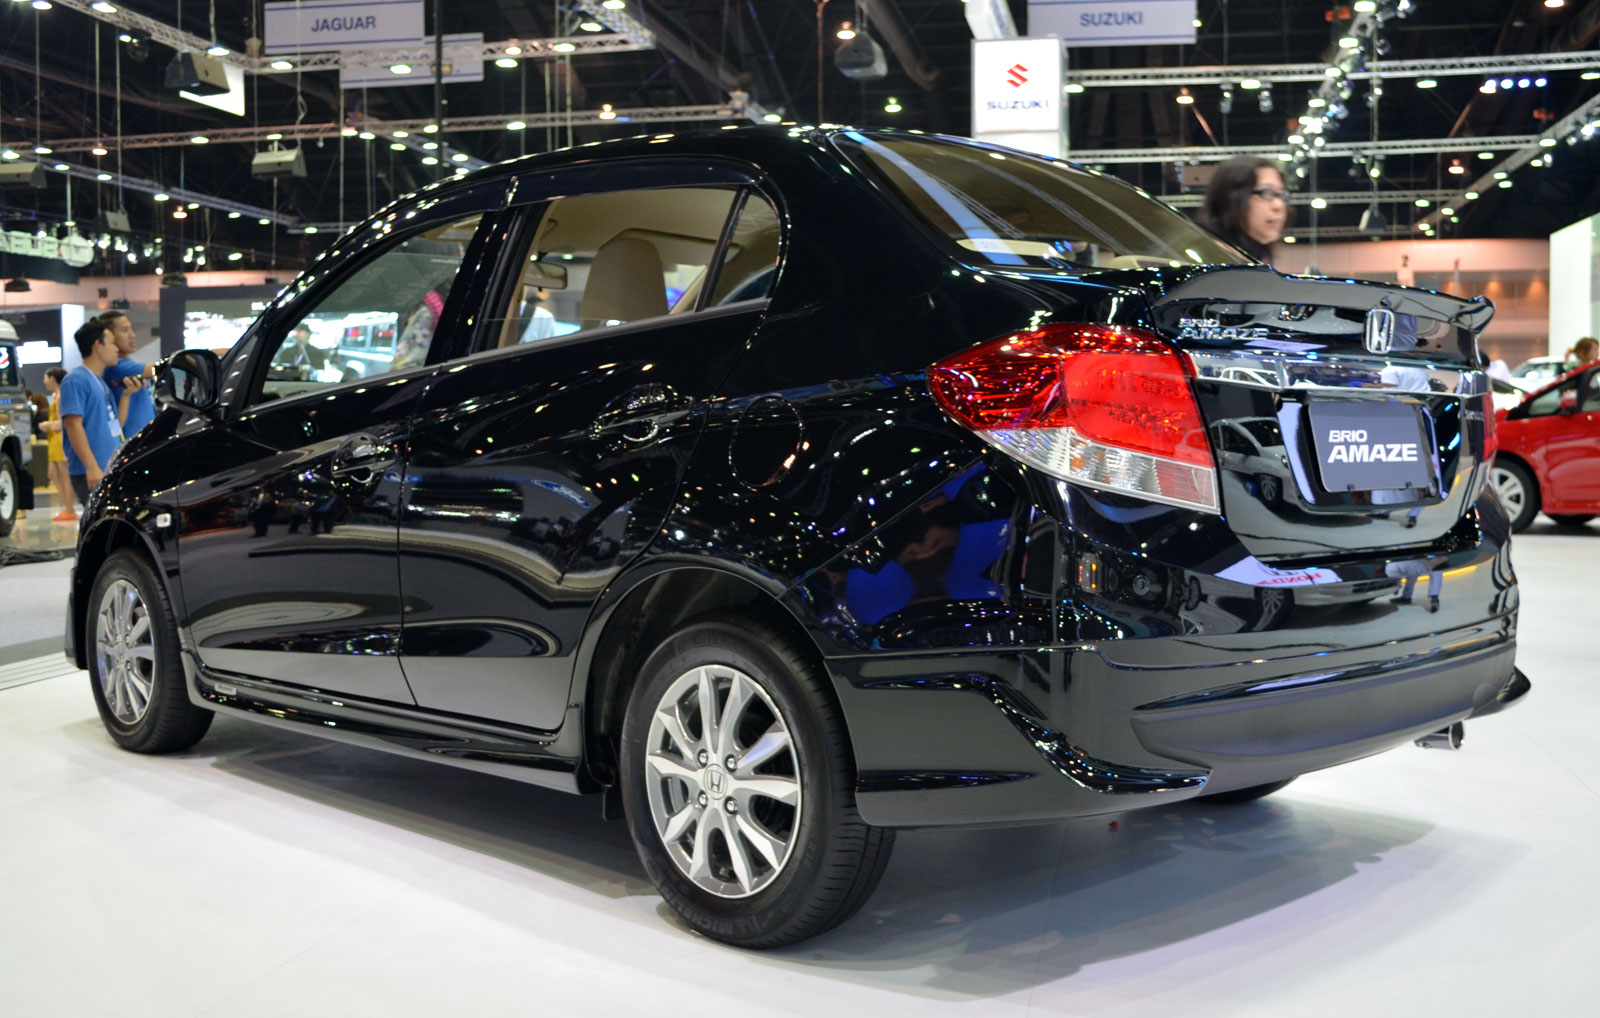 2013-Honda-Brio-Amaze-Compact-Sedan-with-Modulo-Body-Kit diesel